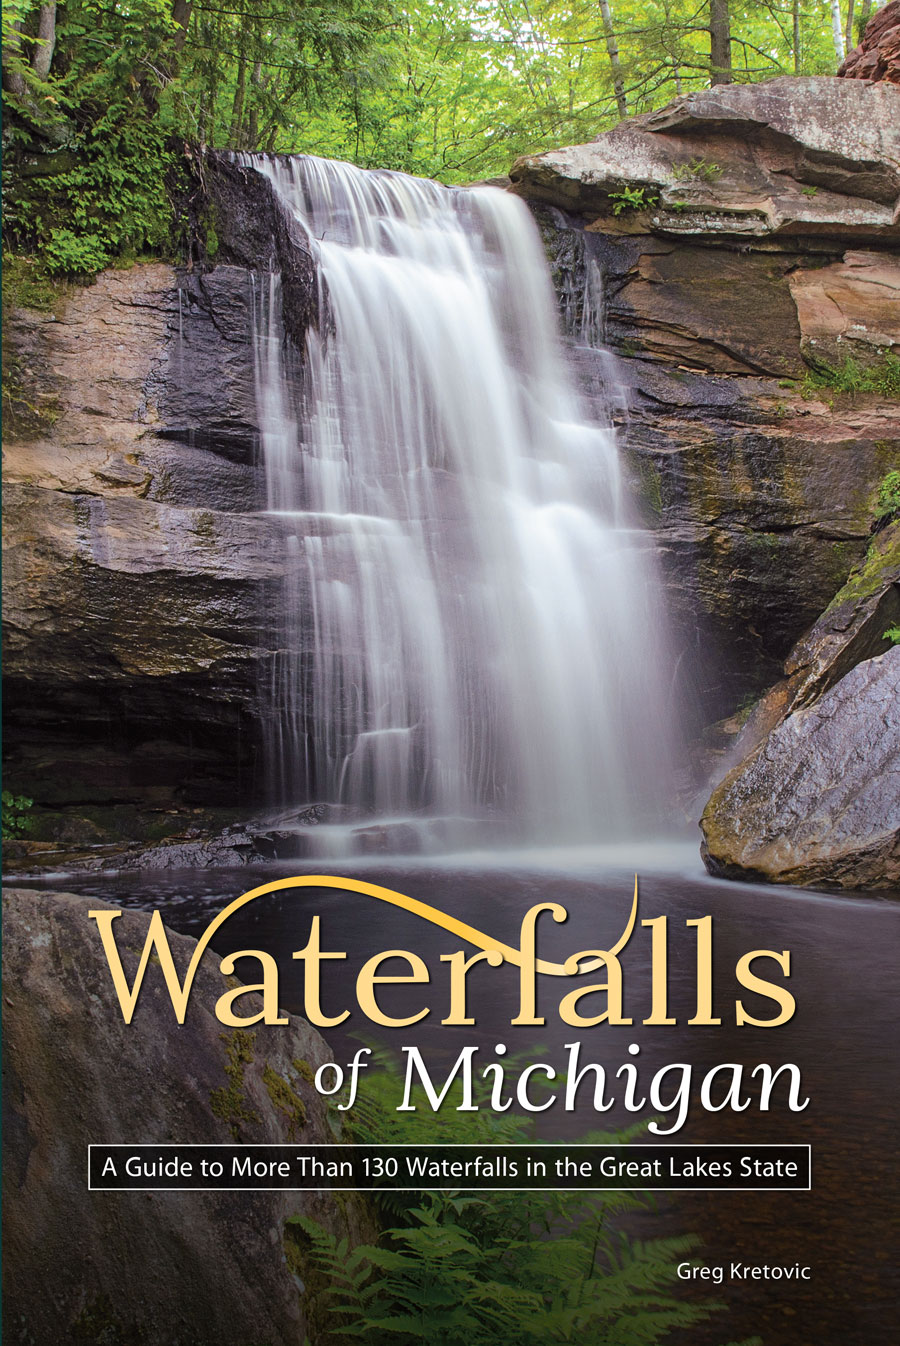 waterfalls of michigan book